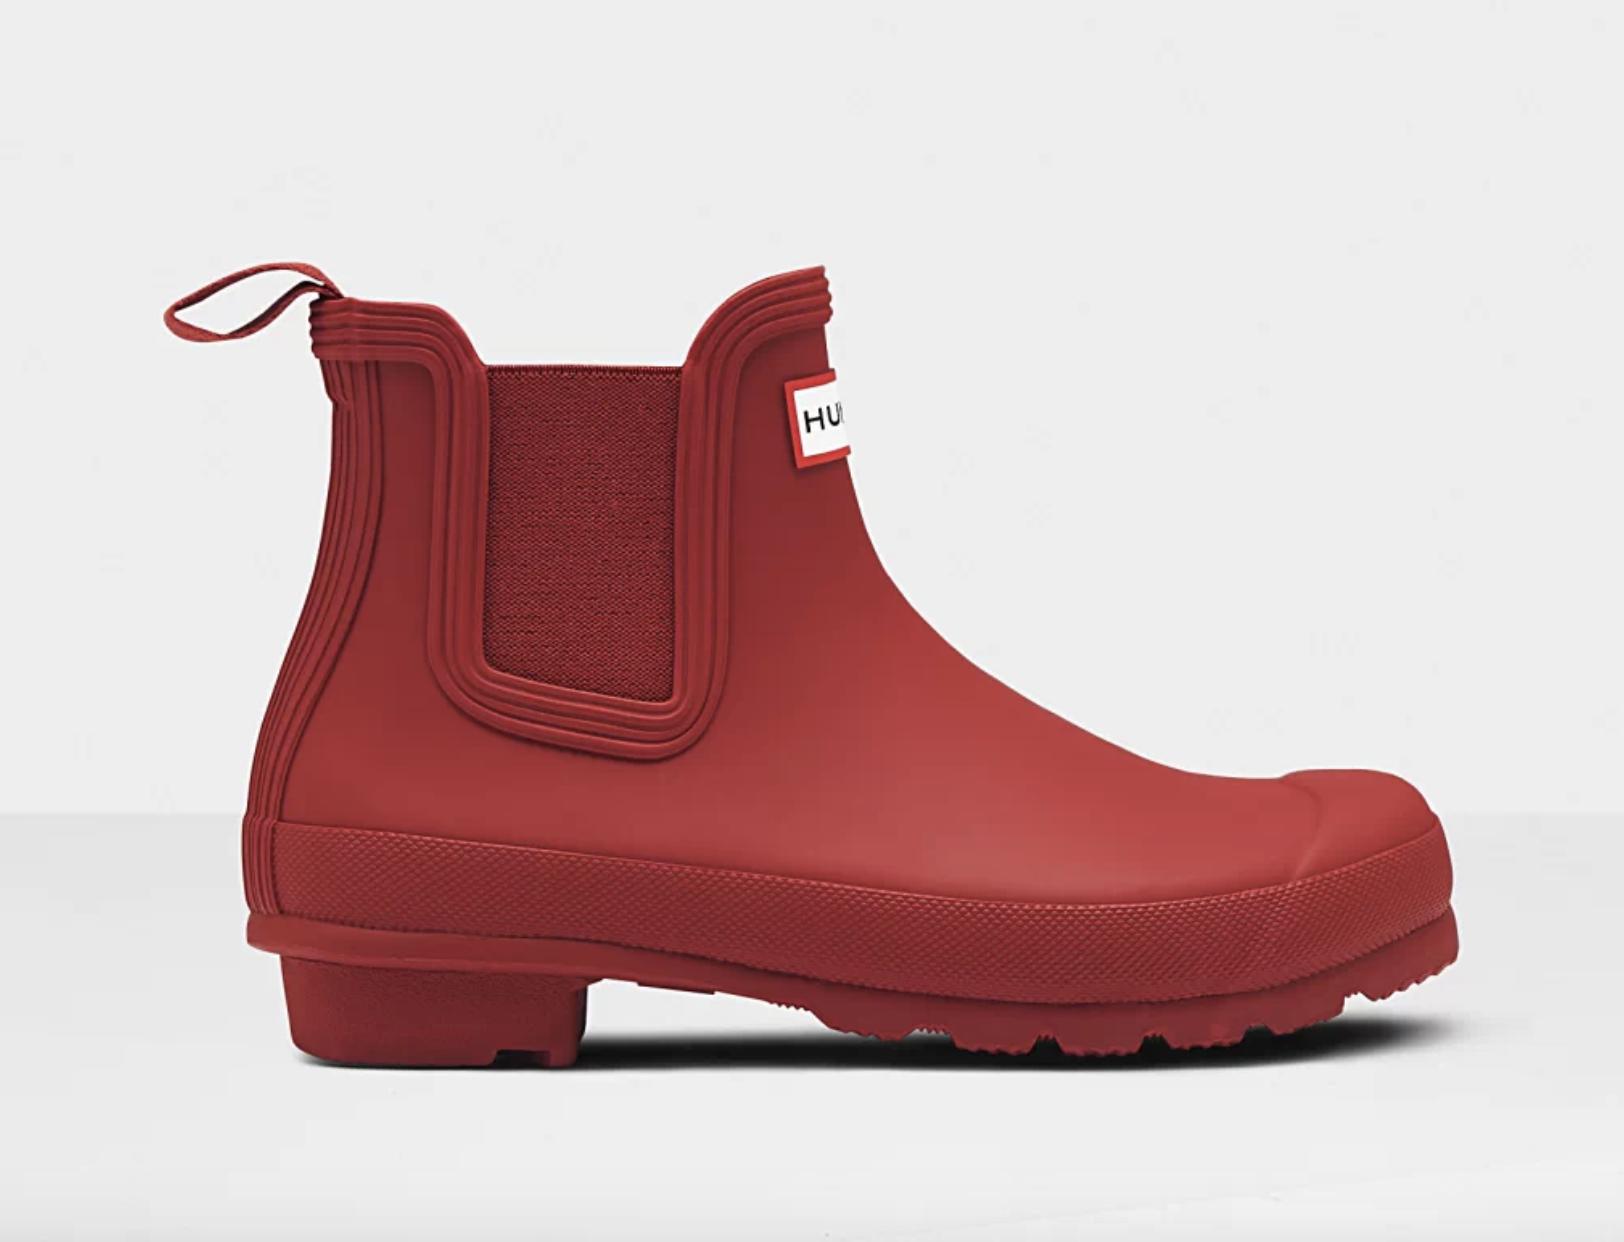 the red rain boots